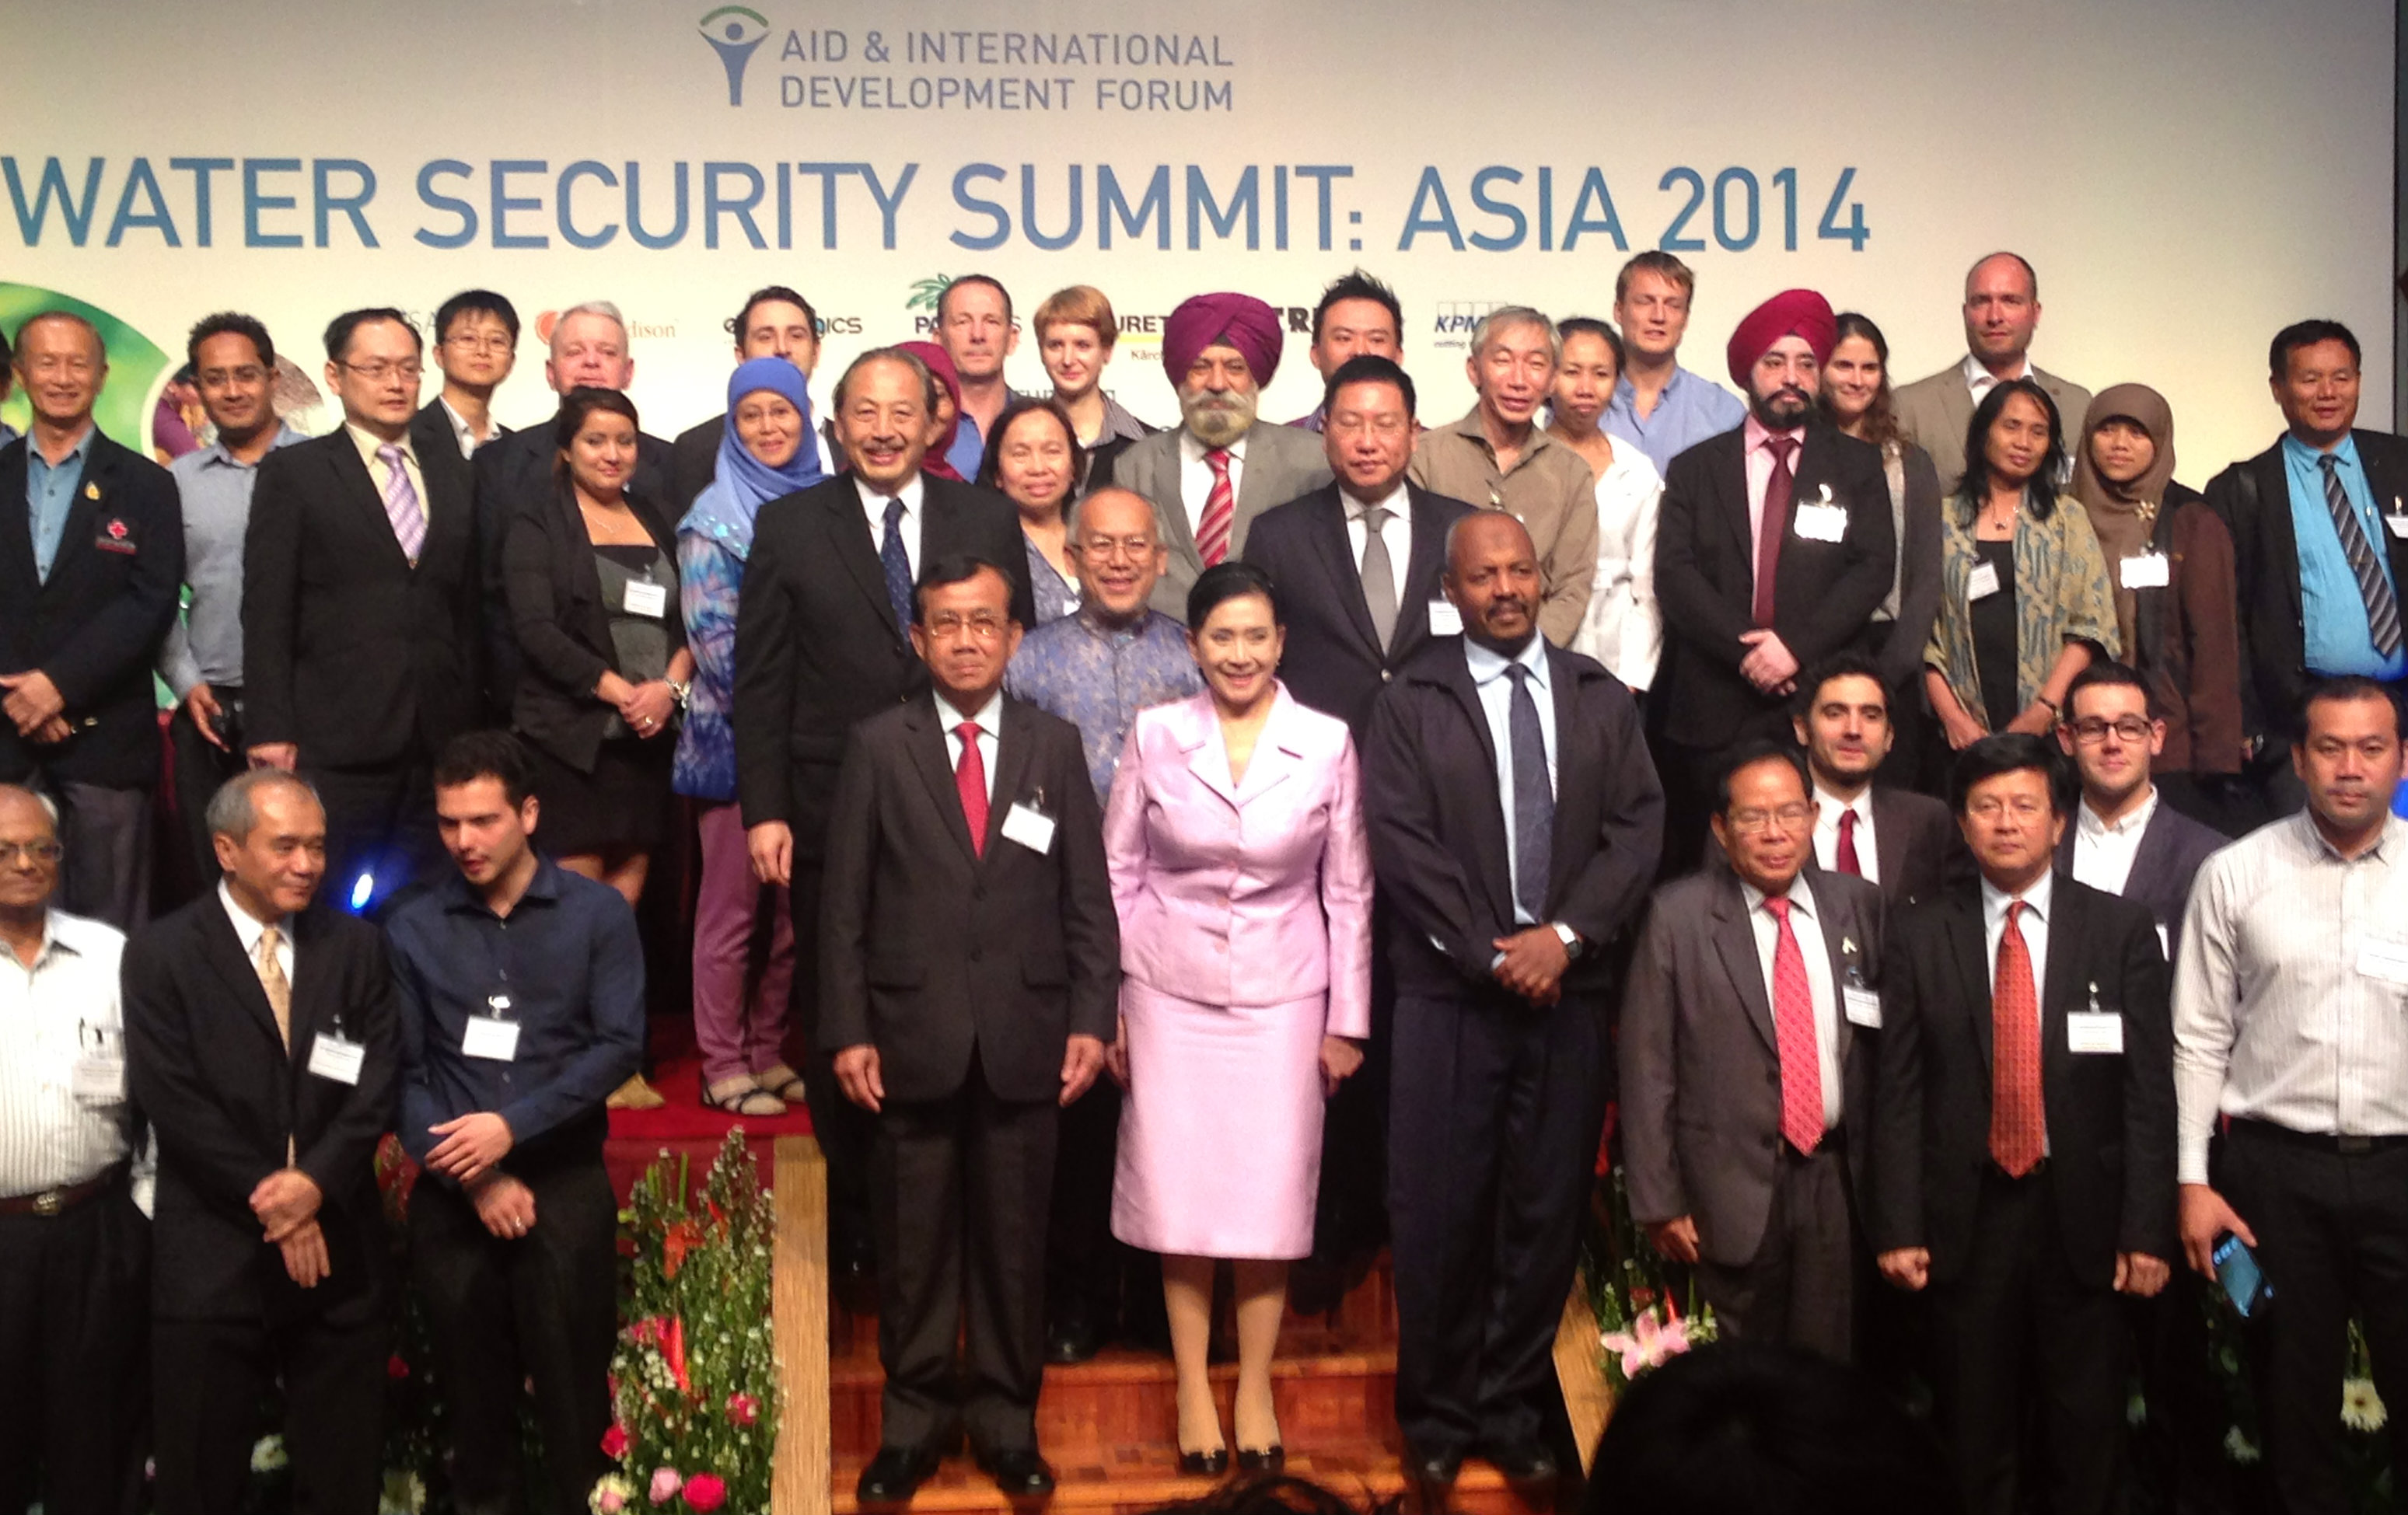 Ministerial Gathering at the AIDF Water Security Summit